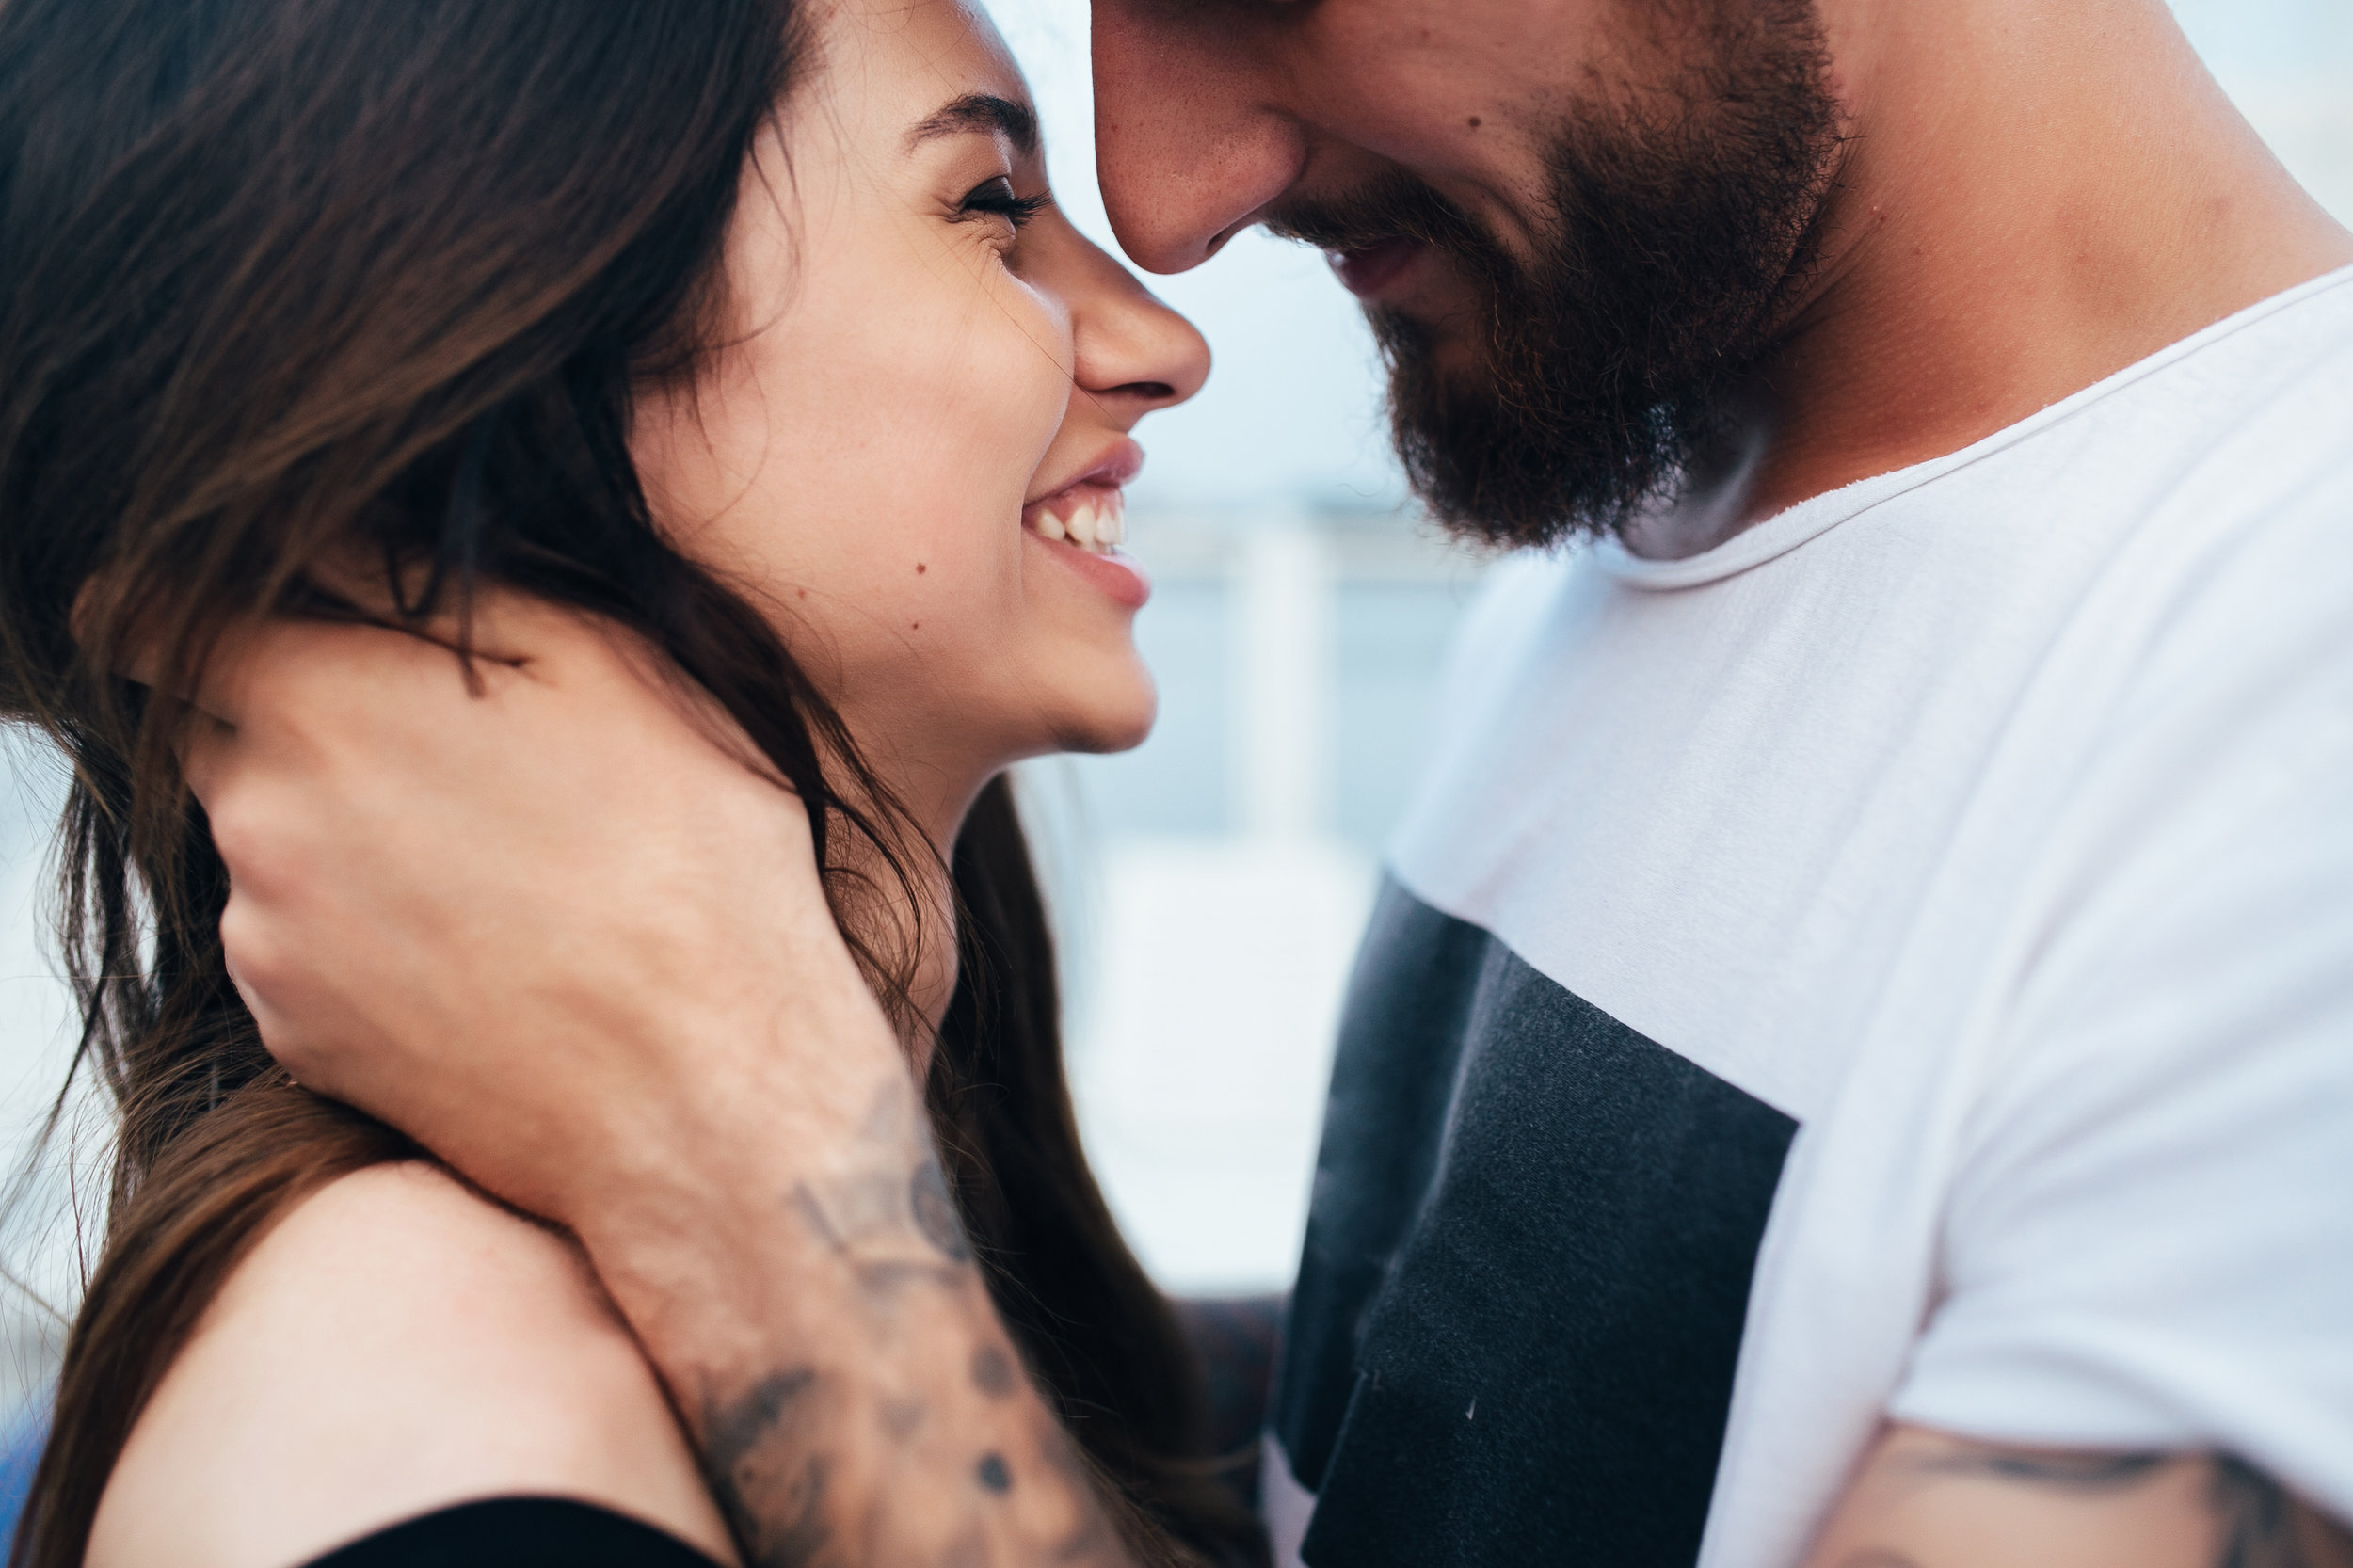 We Speak Relationship.™ - San Francisco Bay Area and Marin's top-rated Sex Therapy & Couples Counseling can help you realize your innate capacity for emotional & sexual connection and intimacy.